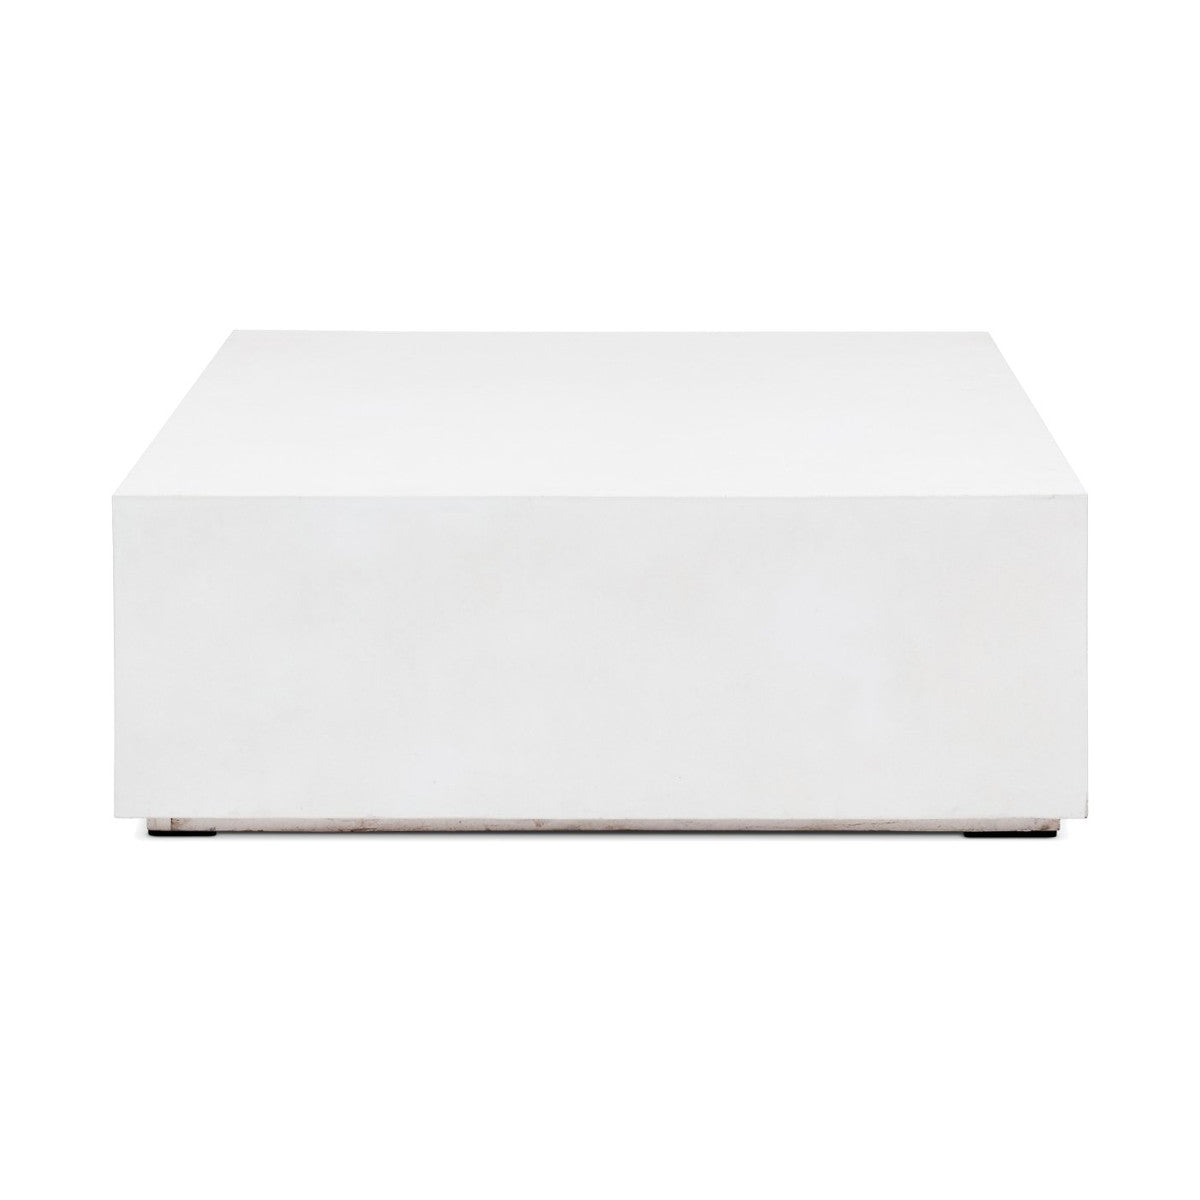 Picture of: Concrete Block Coffee Table Ivory White Industrial Modern The Design Tap